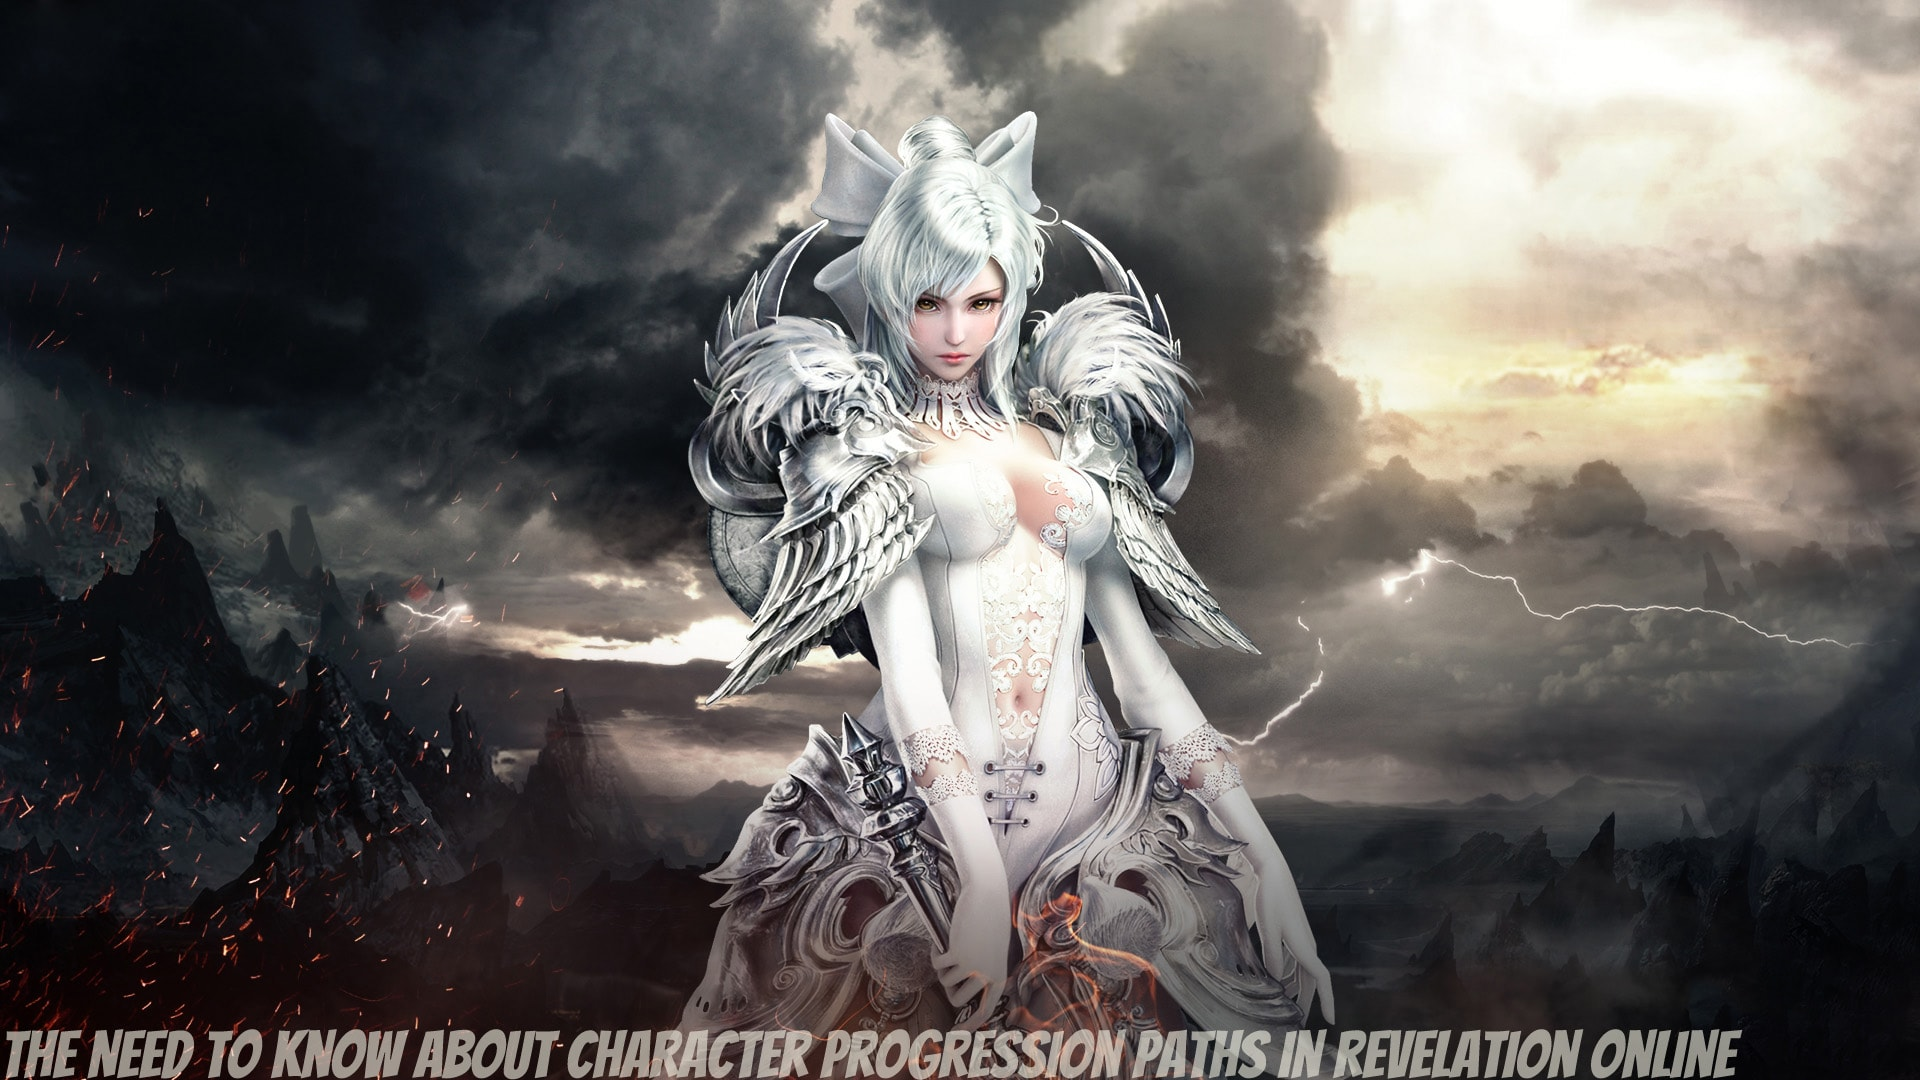 The Need To Know About Character Progression Paths In Revelation Online